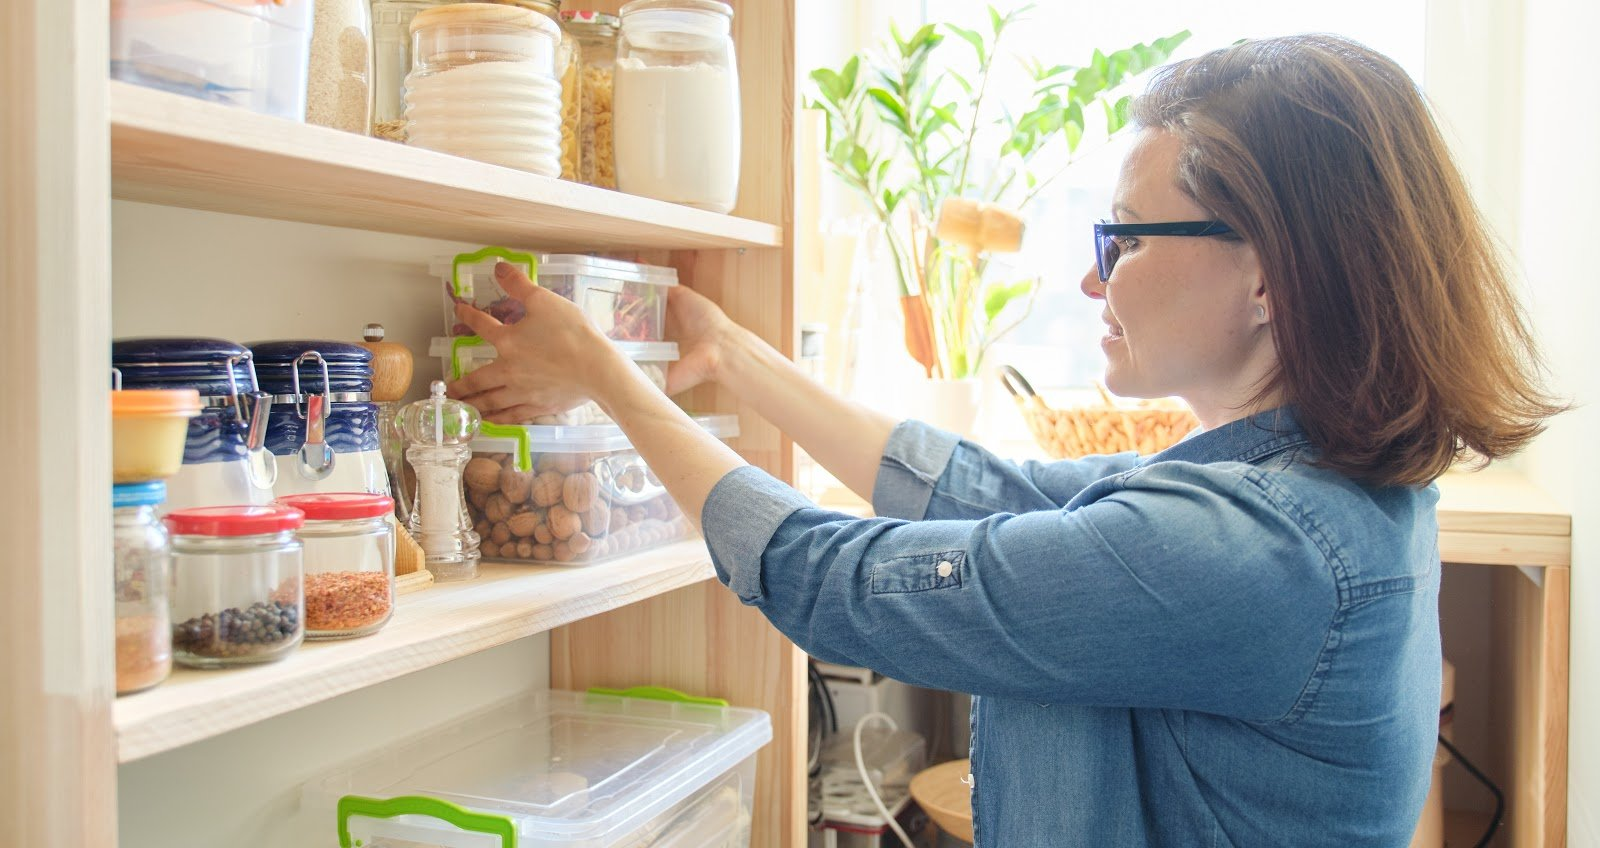 woman taking kitchenware and food from the shelves